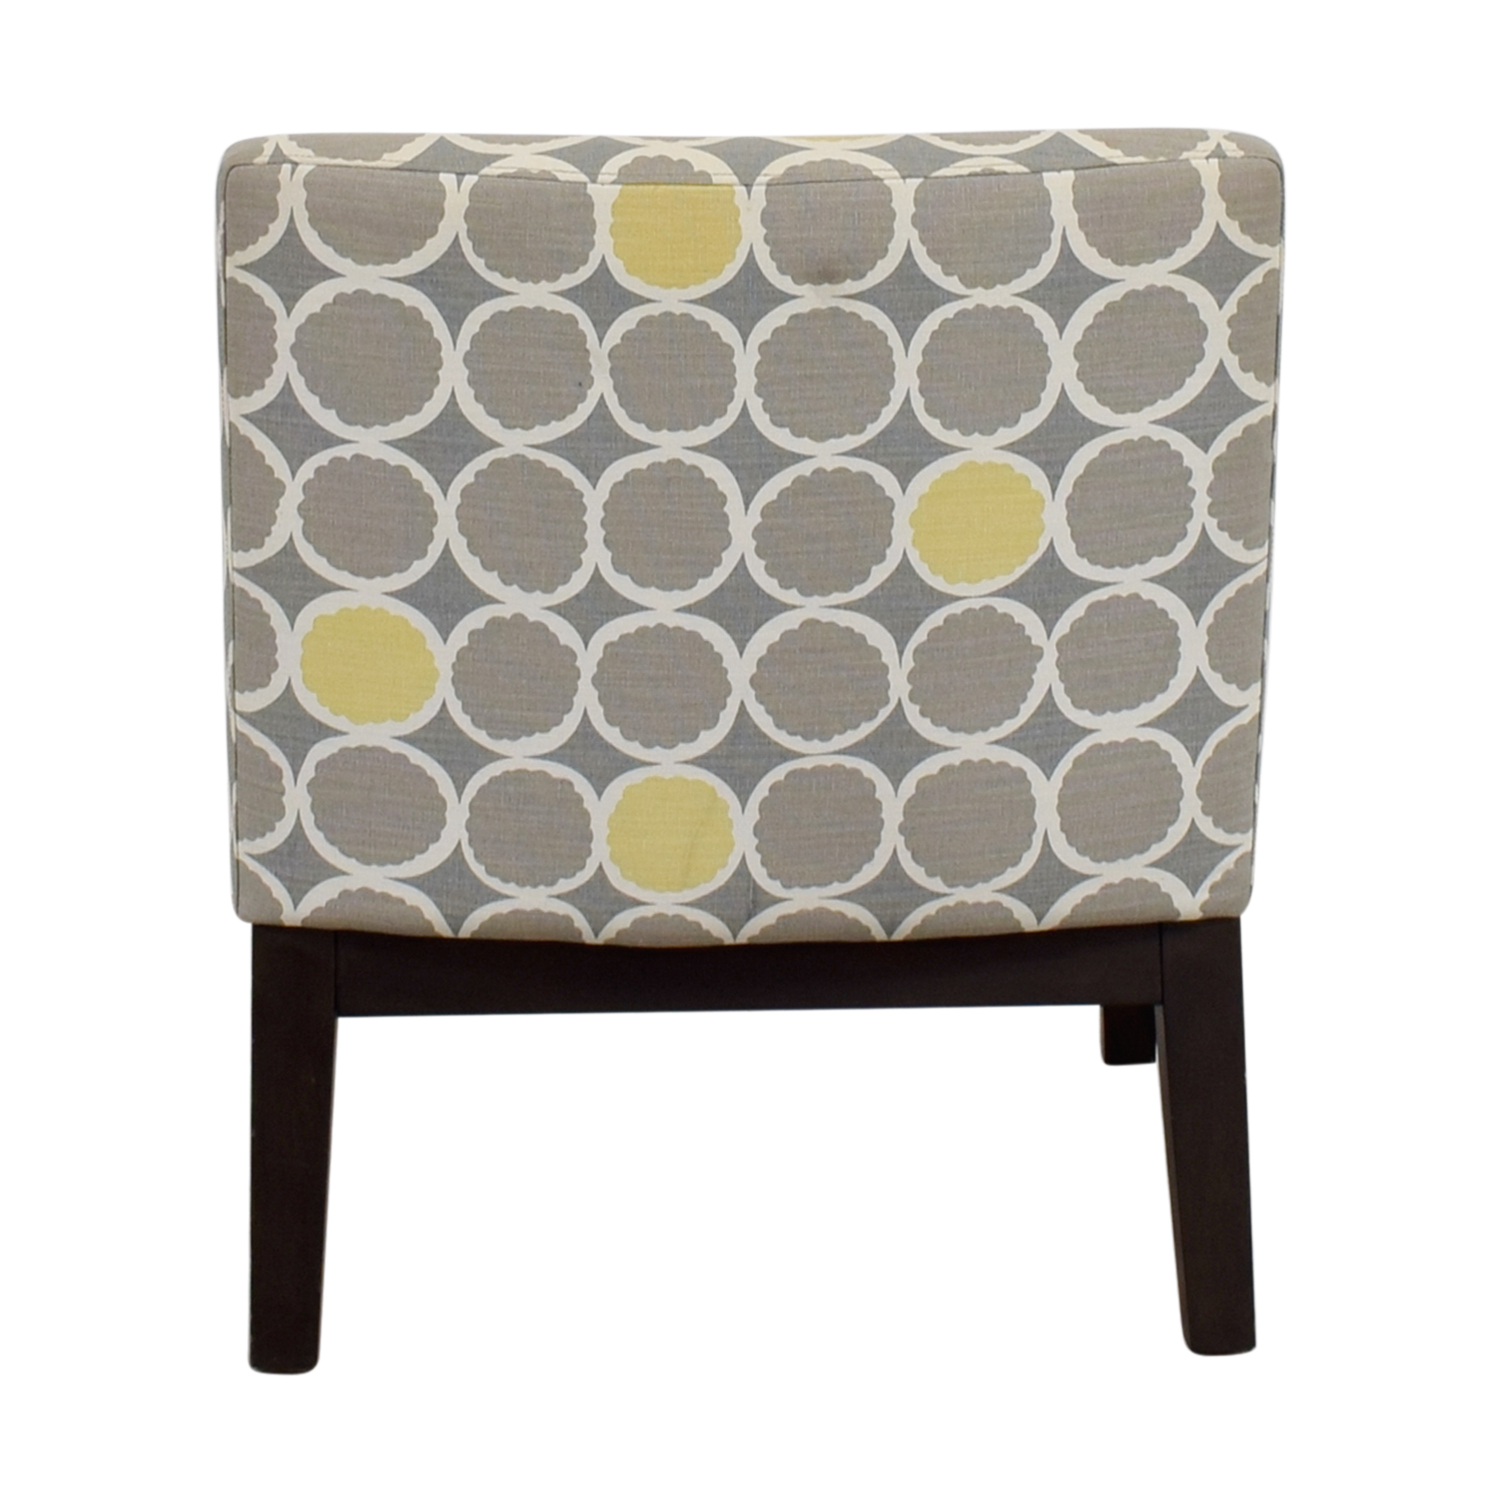 West Elm West Elm Grey Yellow and White Accent Chair for sale